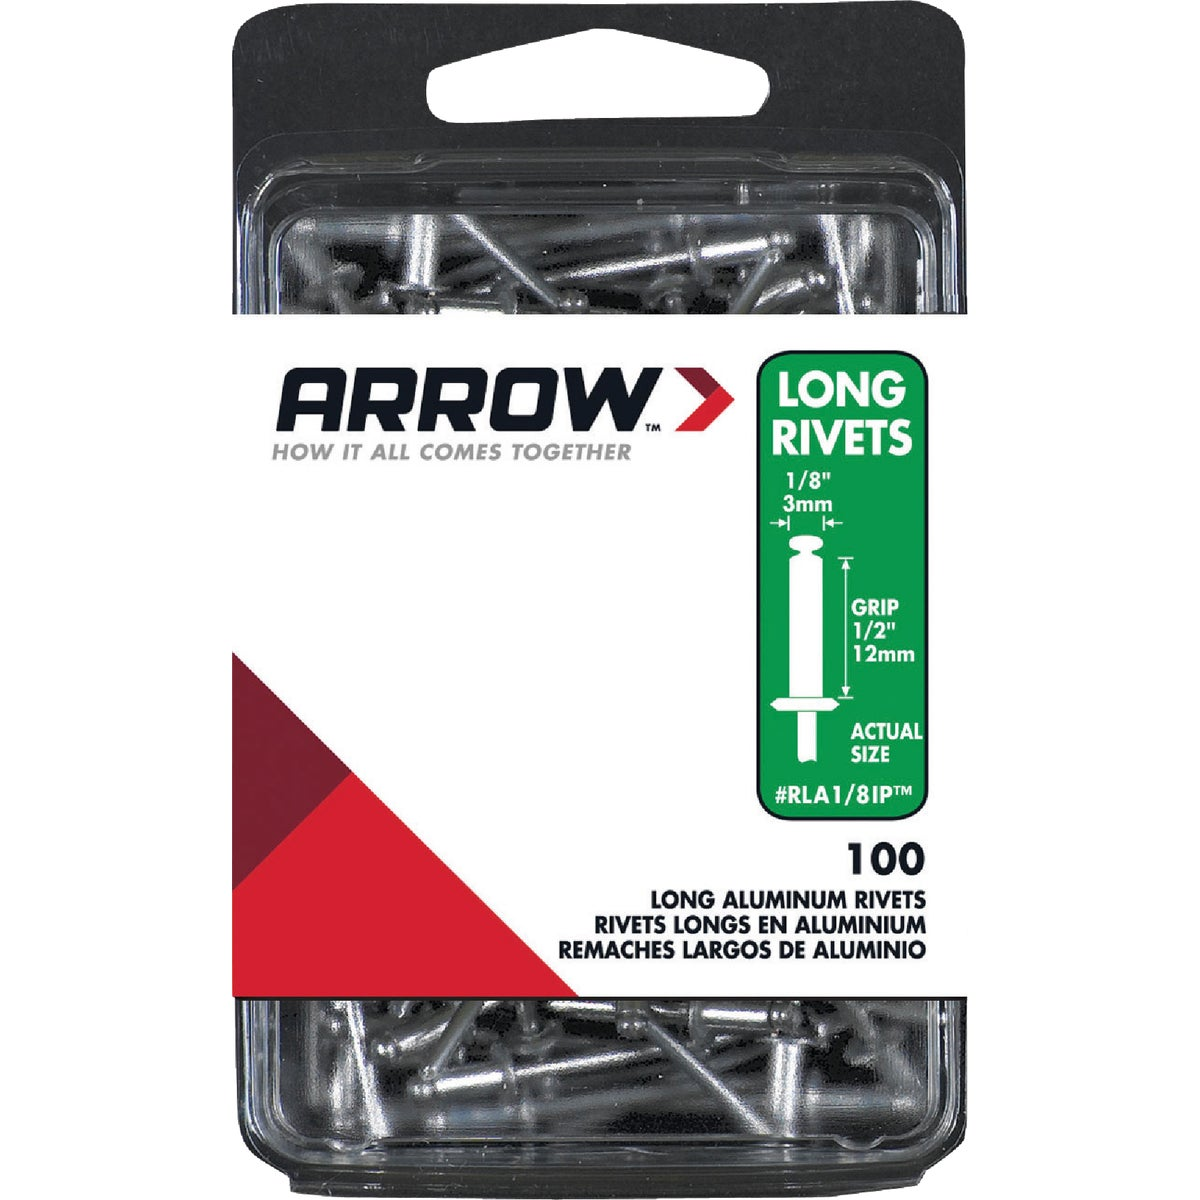 1/8X1/2 ALUM RIVET - RLA1/8IP by Arrow Fastener Co